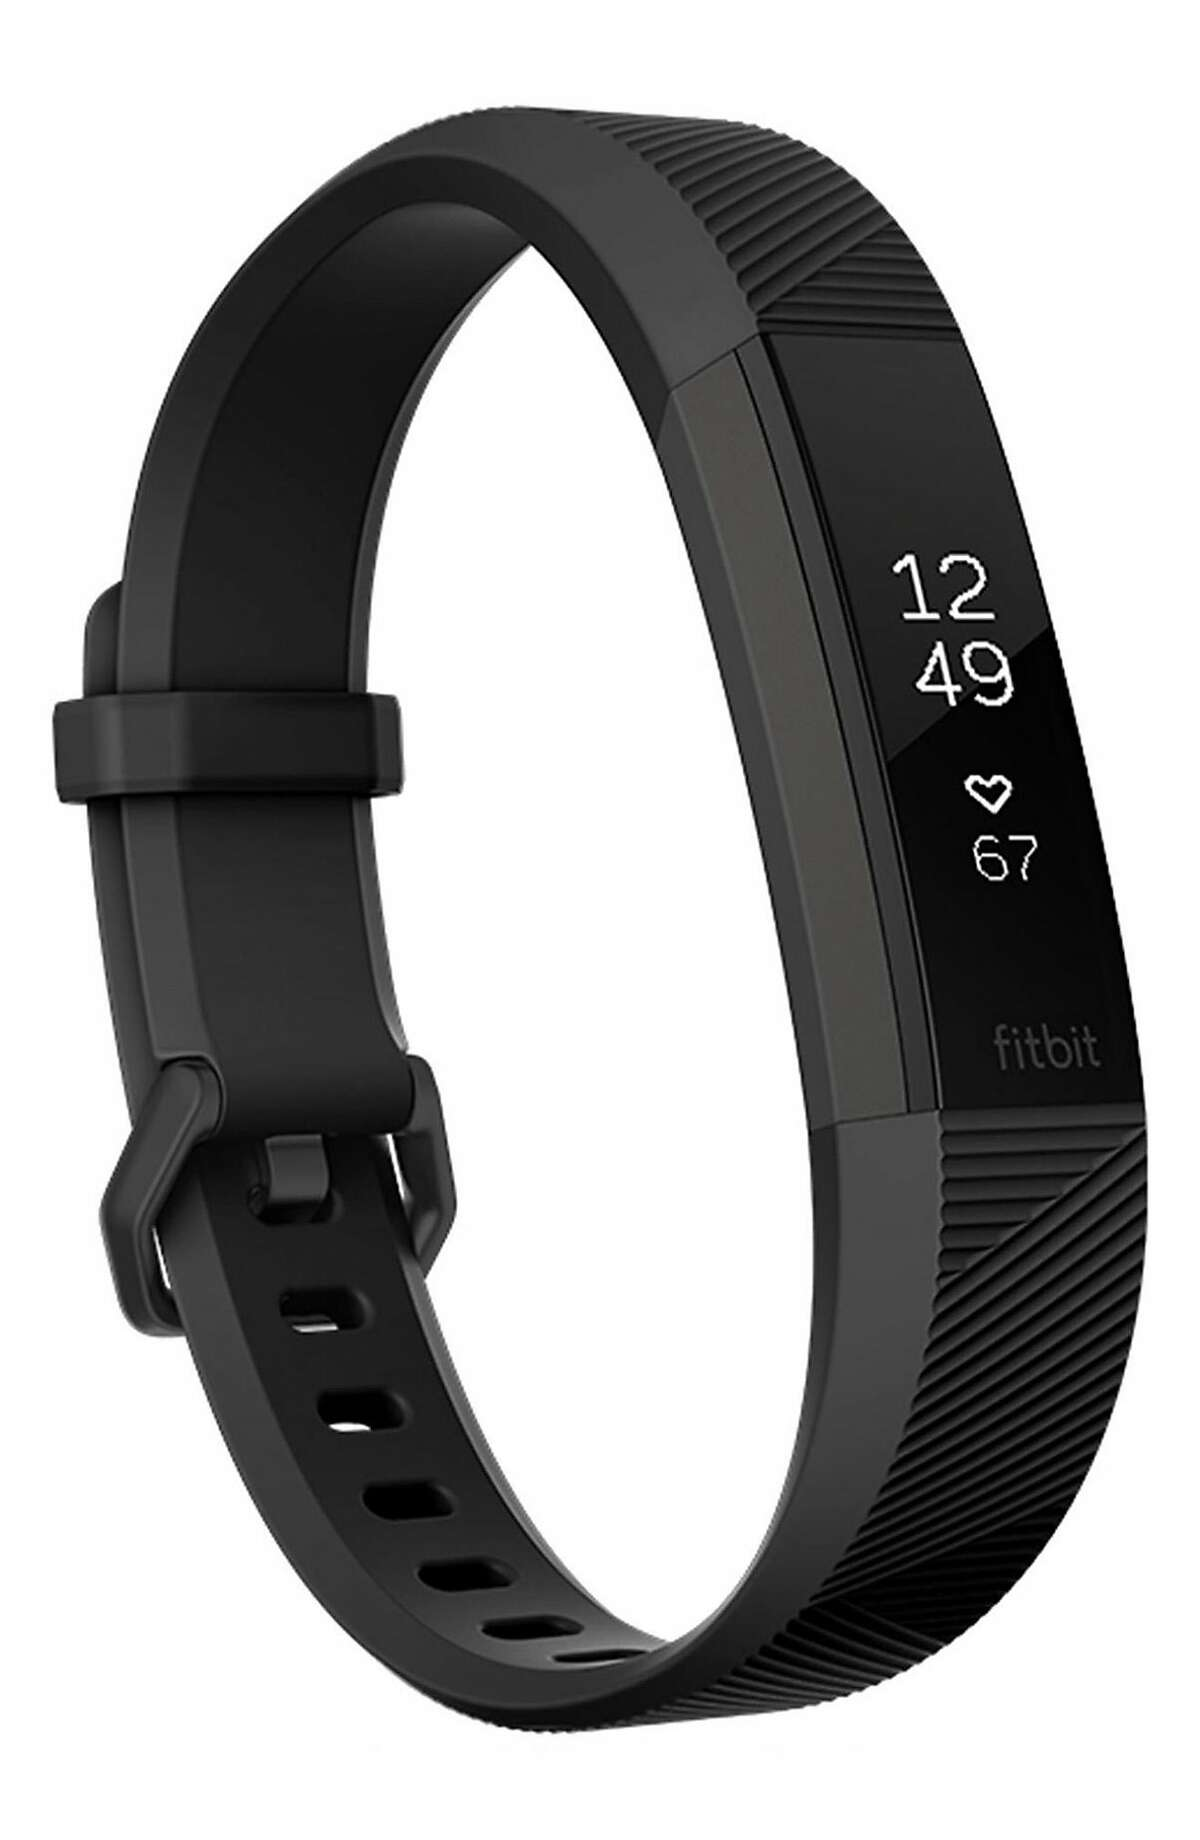 FitBit special edition Alta HR wireless heart rate and fitness tracker; $179.95 at Nordstrom